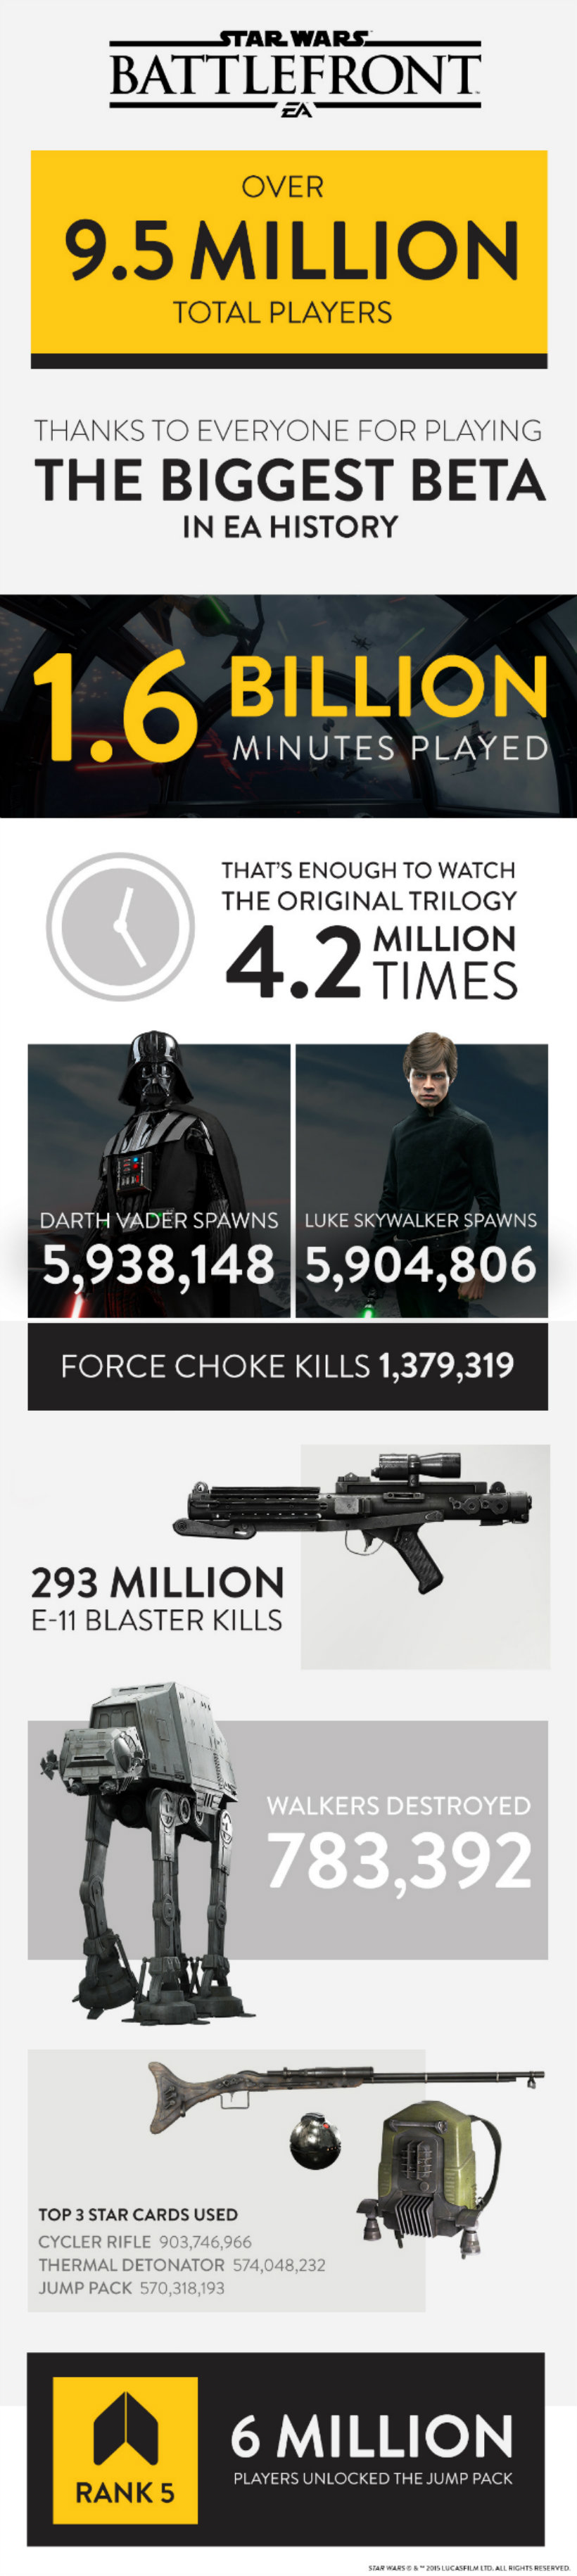 Battlefront beta infographic